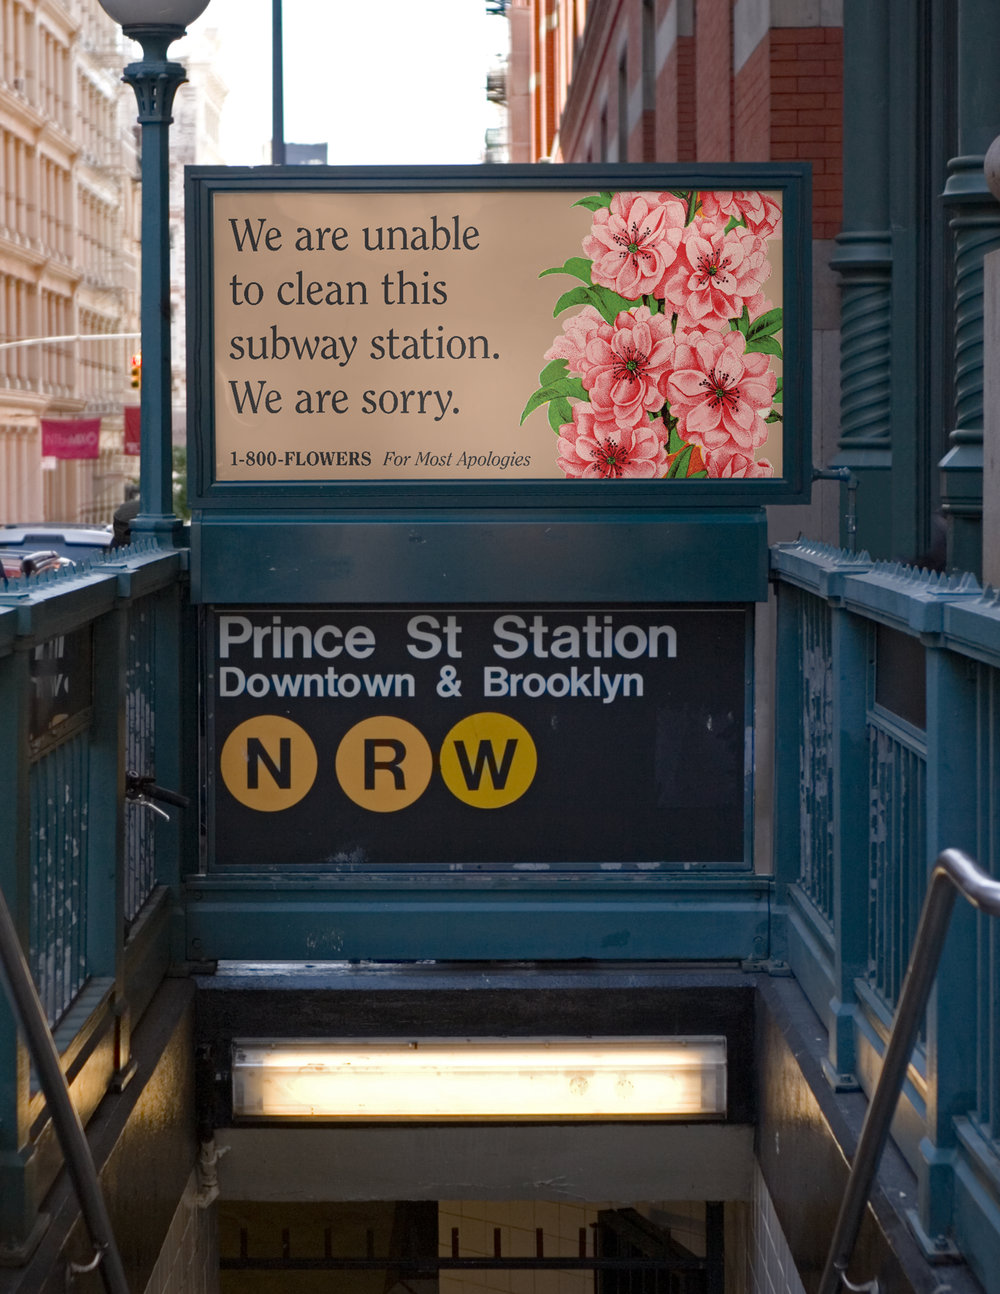 1800FLOWERS_Subway.jpg